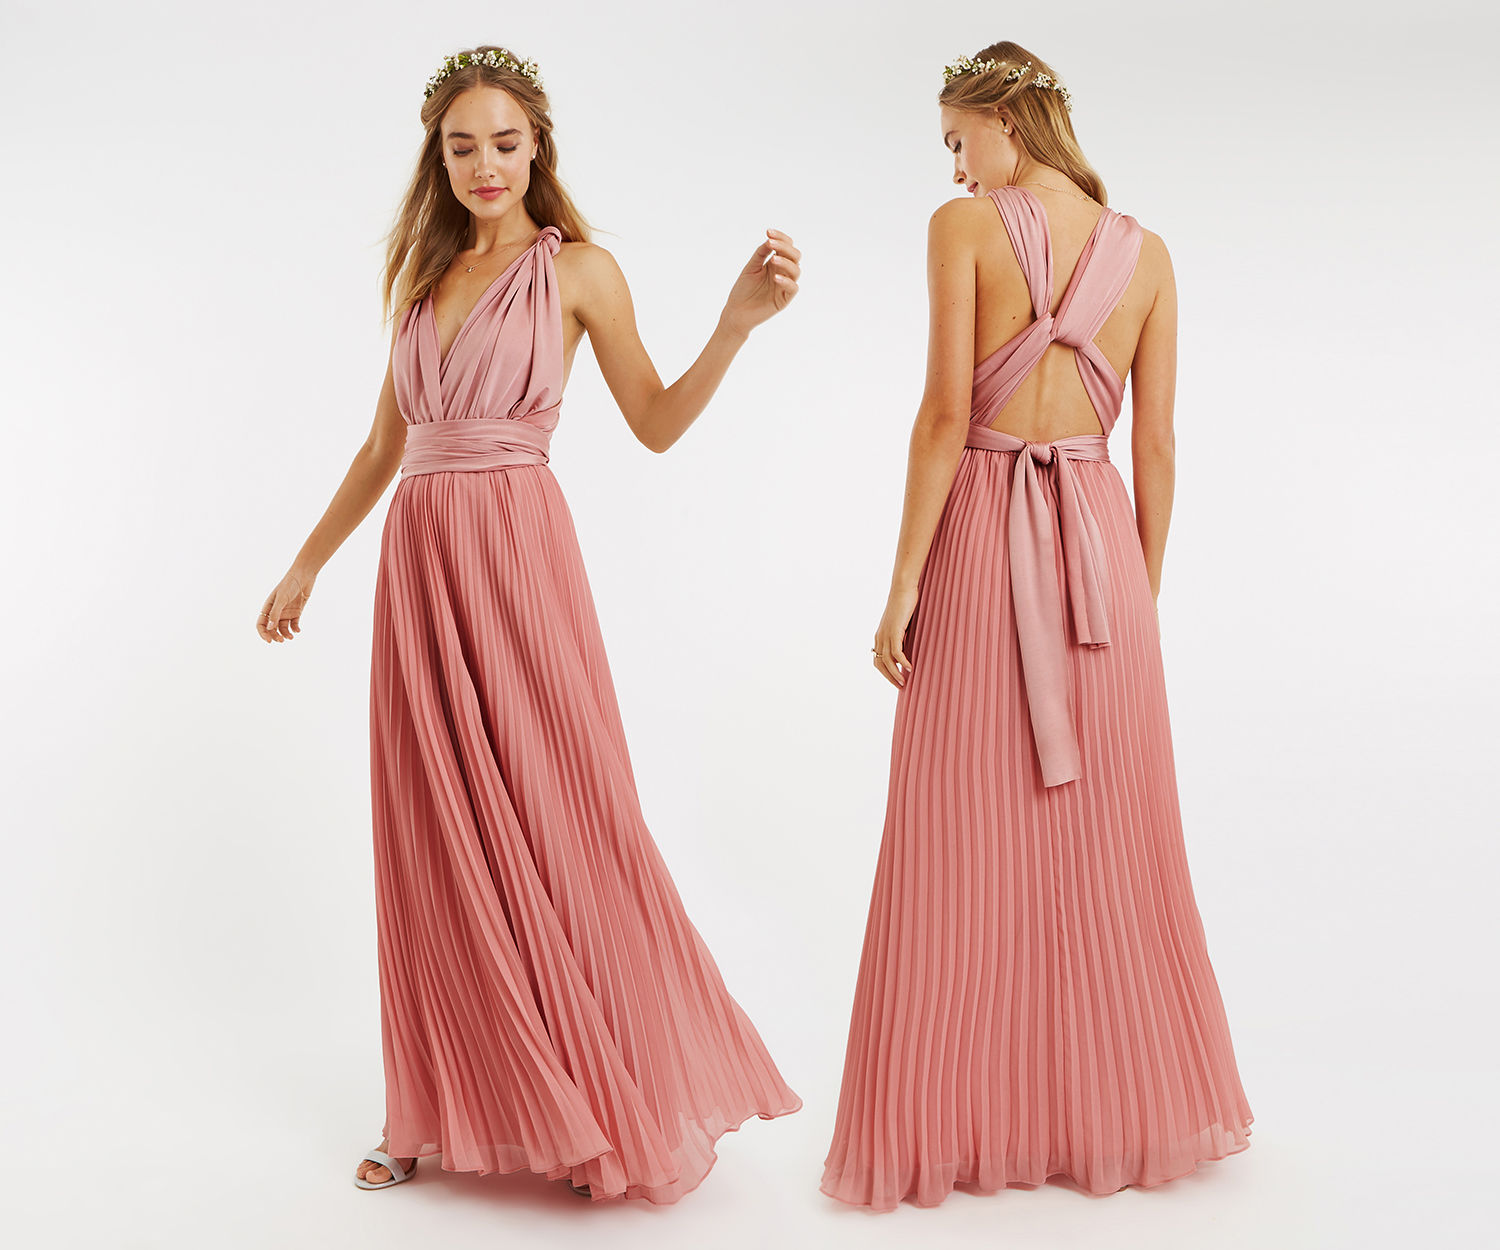 Oasis Wear It Your Way Maxi Dress Pale Pink Maxi Dress Pleated Maxi Dress Floral Maxi Dress